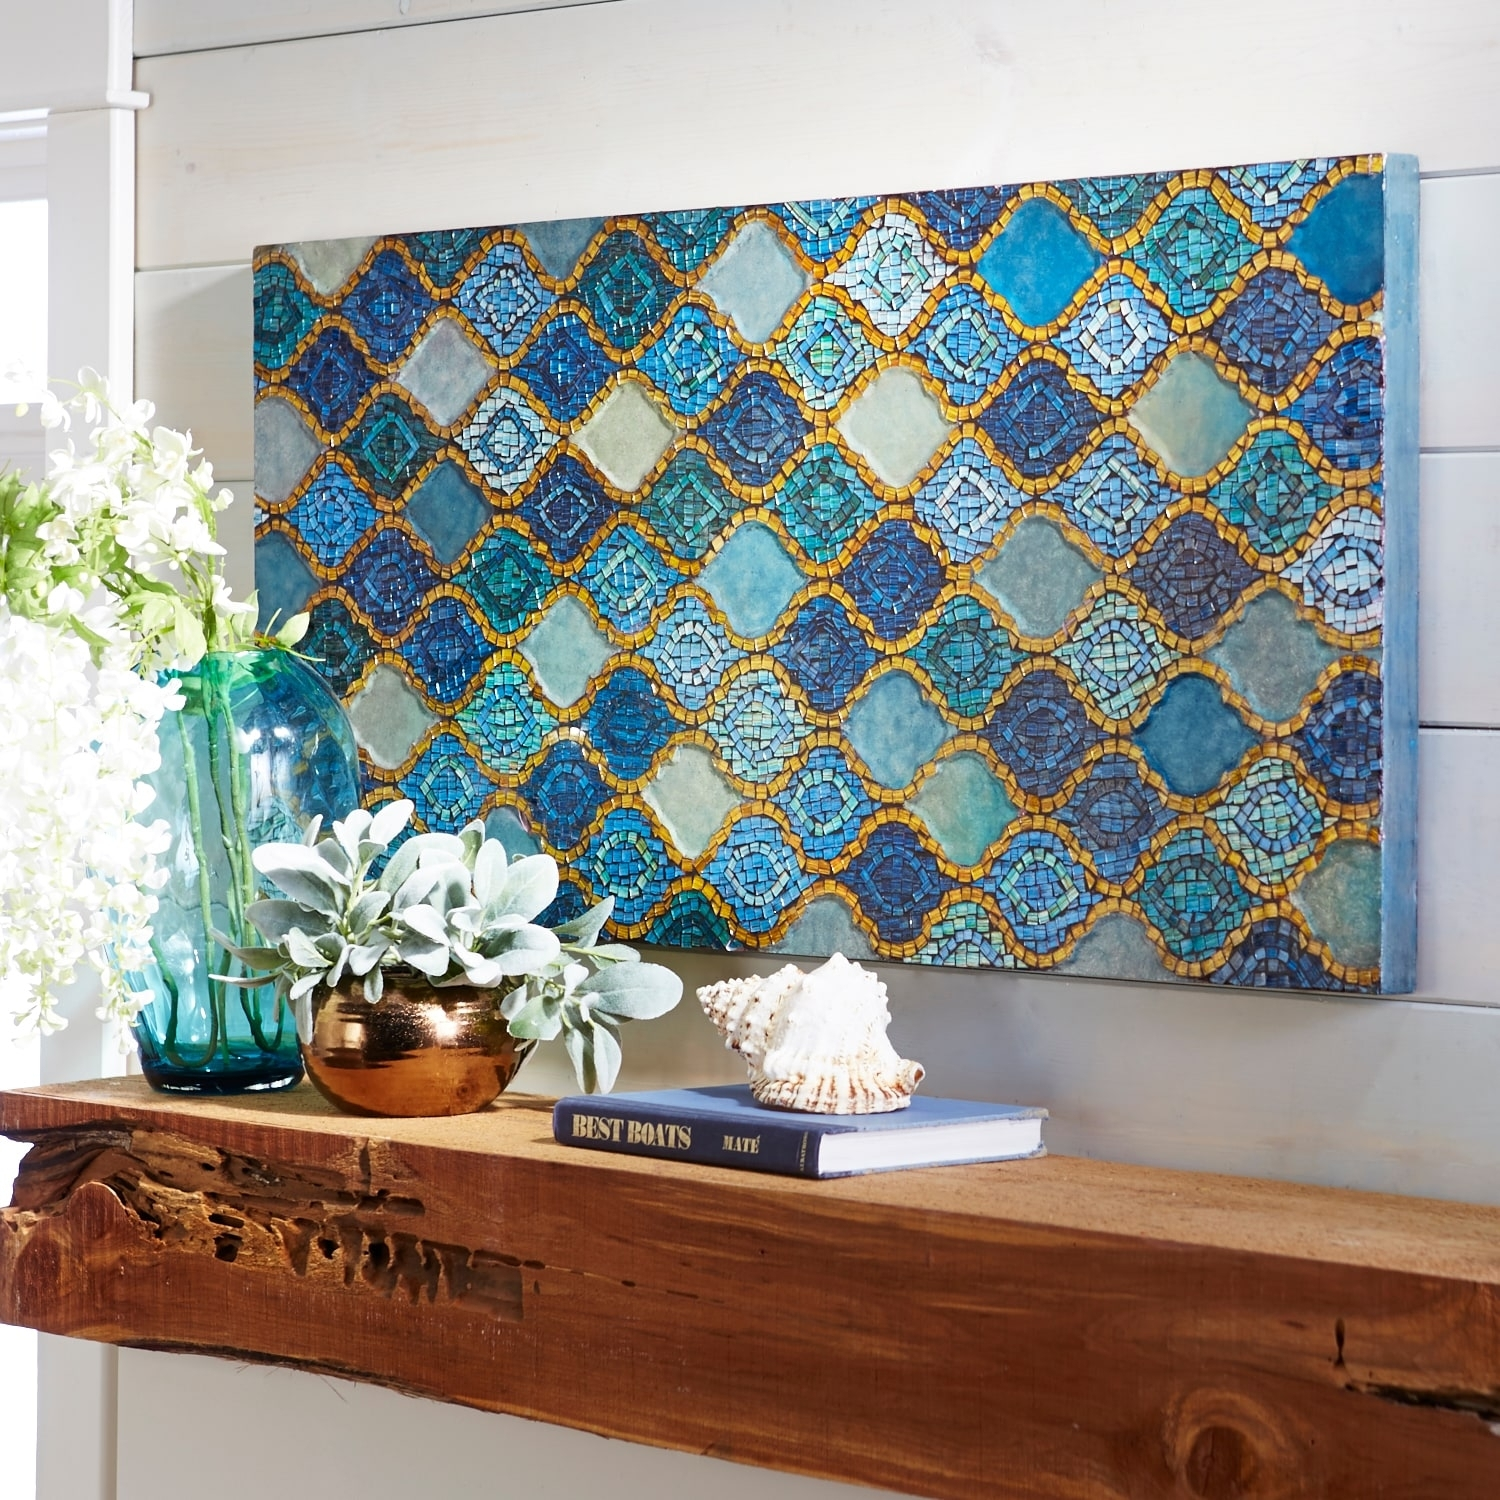 Wall Art And Decor • Walls Decor Within Latest Pier One Abstract Wall Art (View 6 of 20)